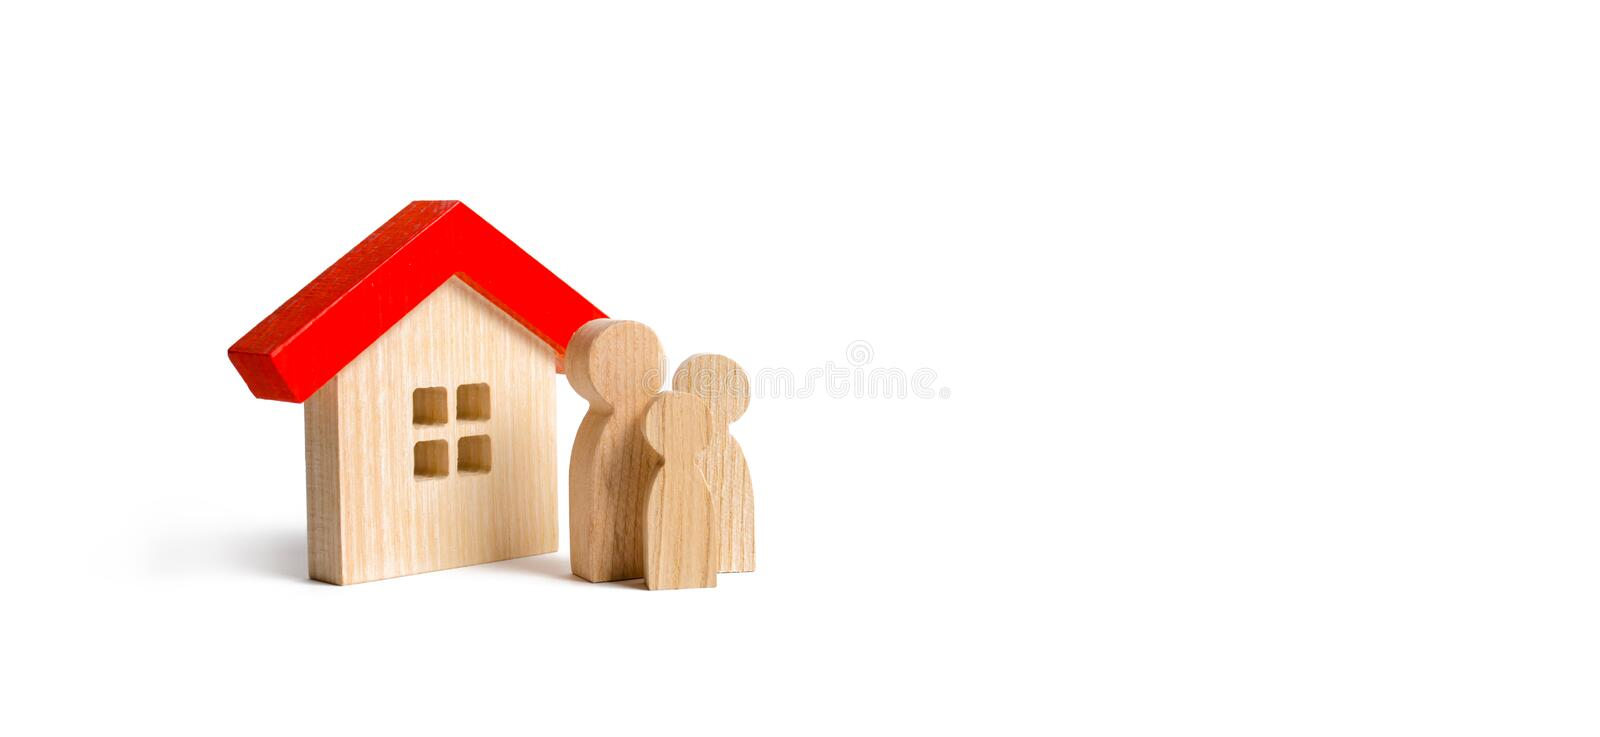 Figures of the family and house on an isolated background. real estate, your own home. Affordable housing on credit or mortgage. Renovation and construction royalty free stock photography